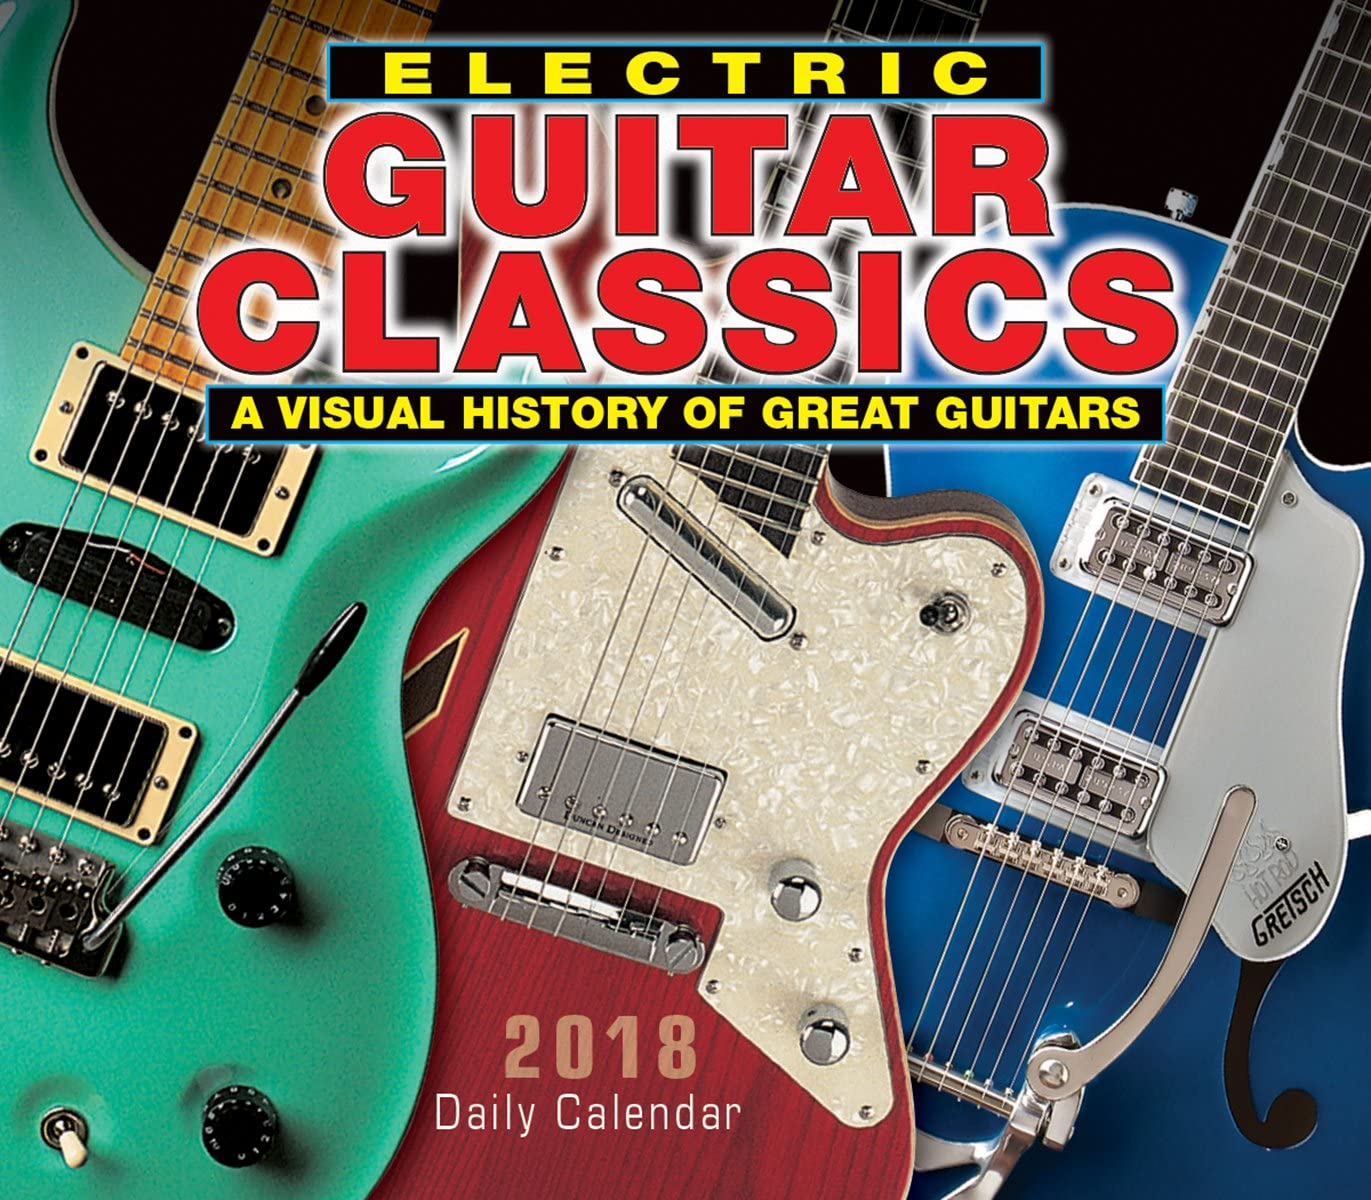 Selling Electric Fresno Mall Guitar Classics: A Visual Great Guitars Of History 2018